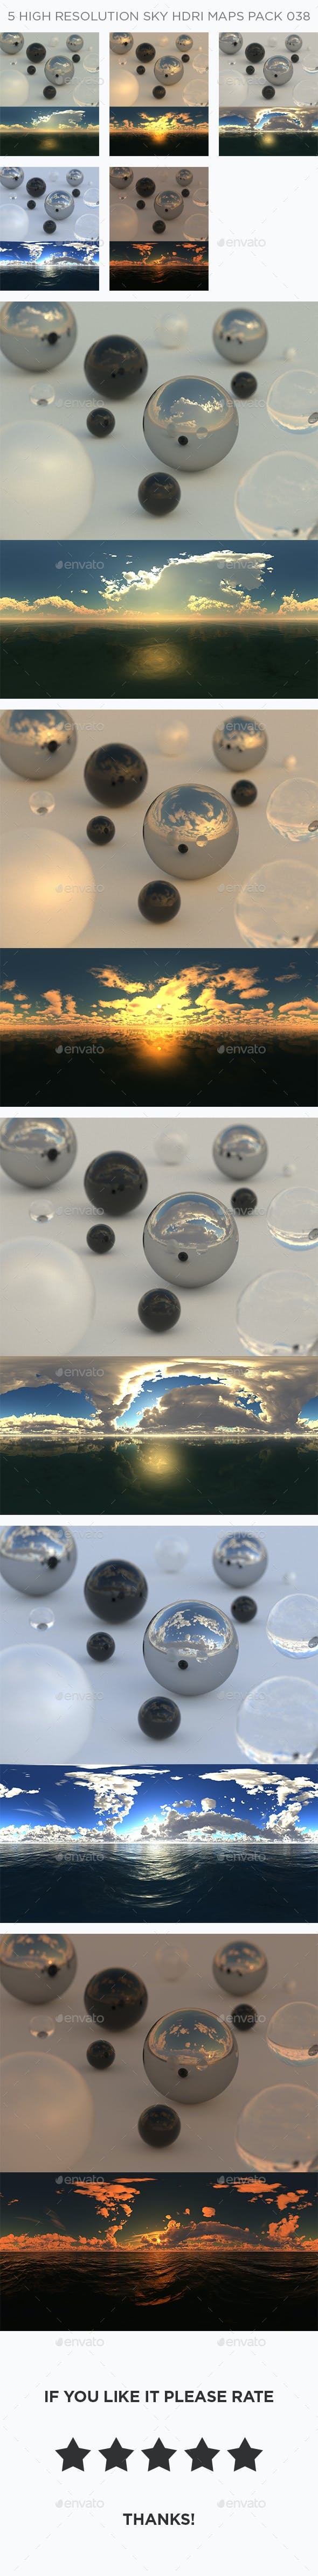 5 High Resolution Sky HDRi Maps Pack 038 - 3DOcean Item for Sale